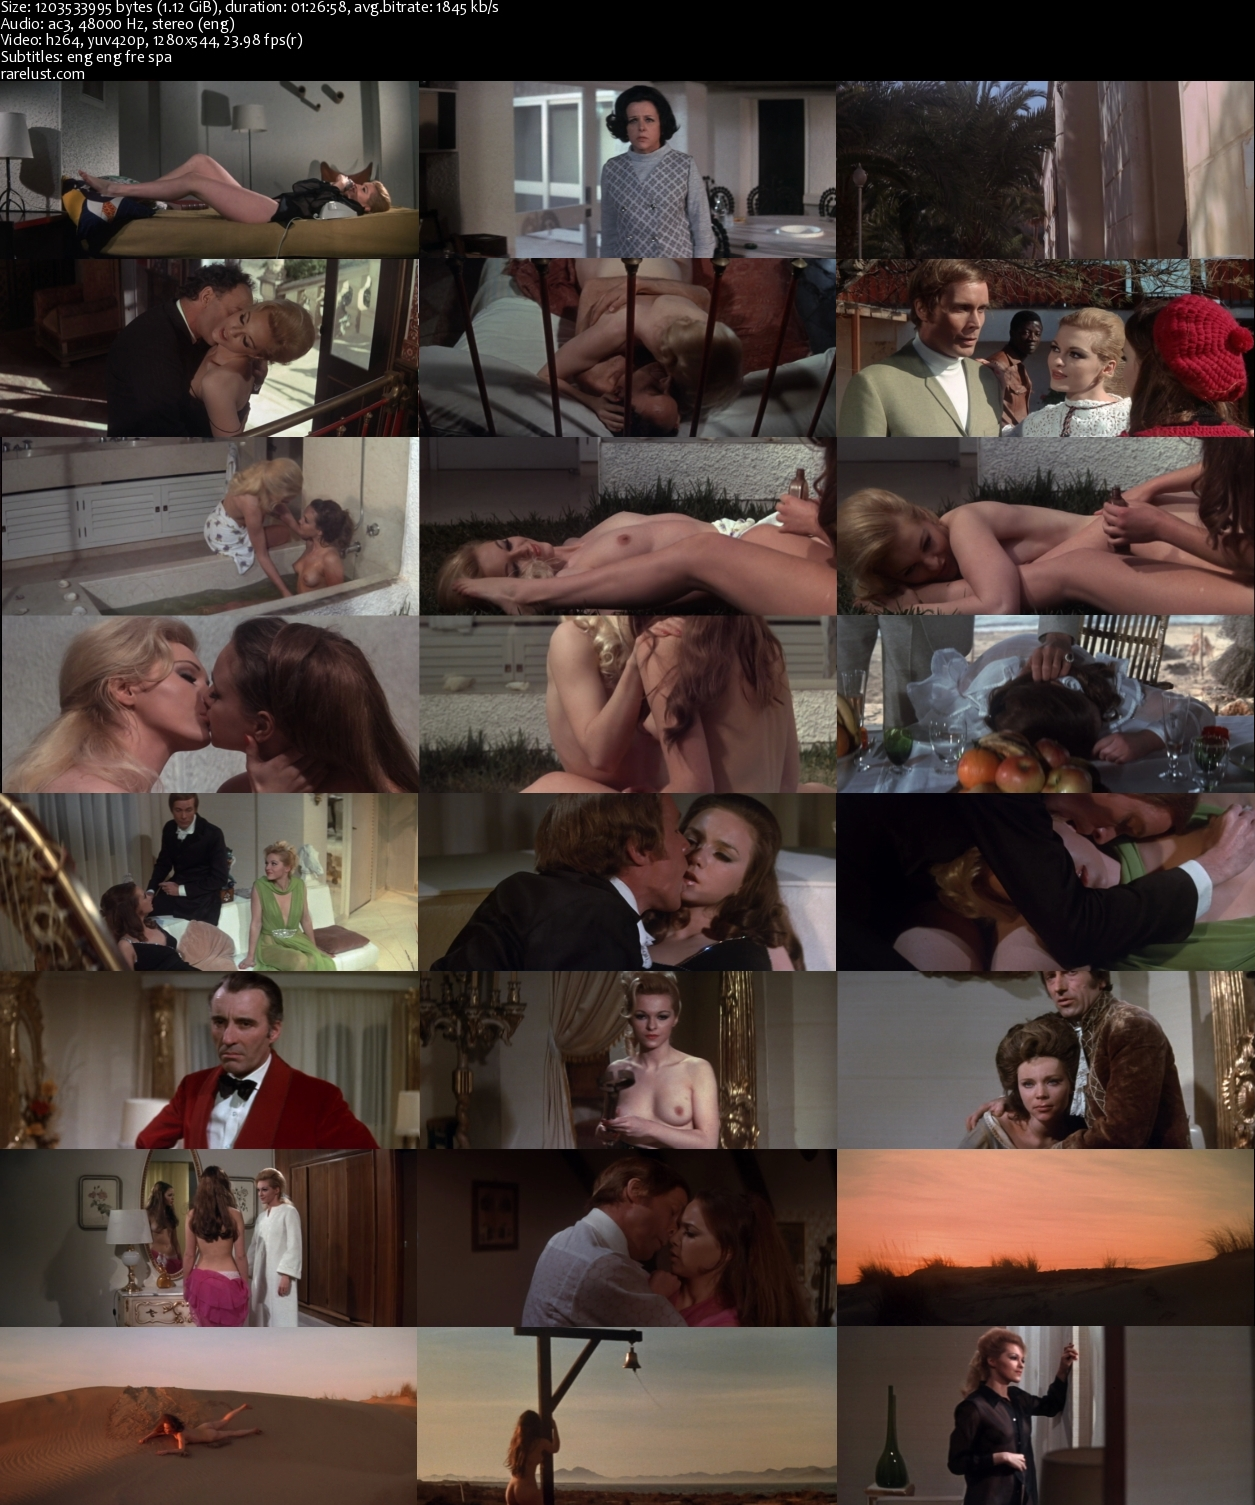 eugenie_the_story_of_her_journey_into_perversion_1970